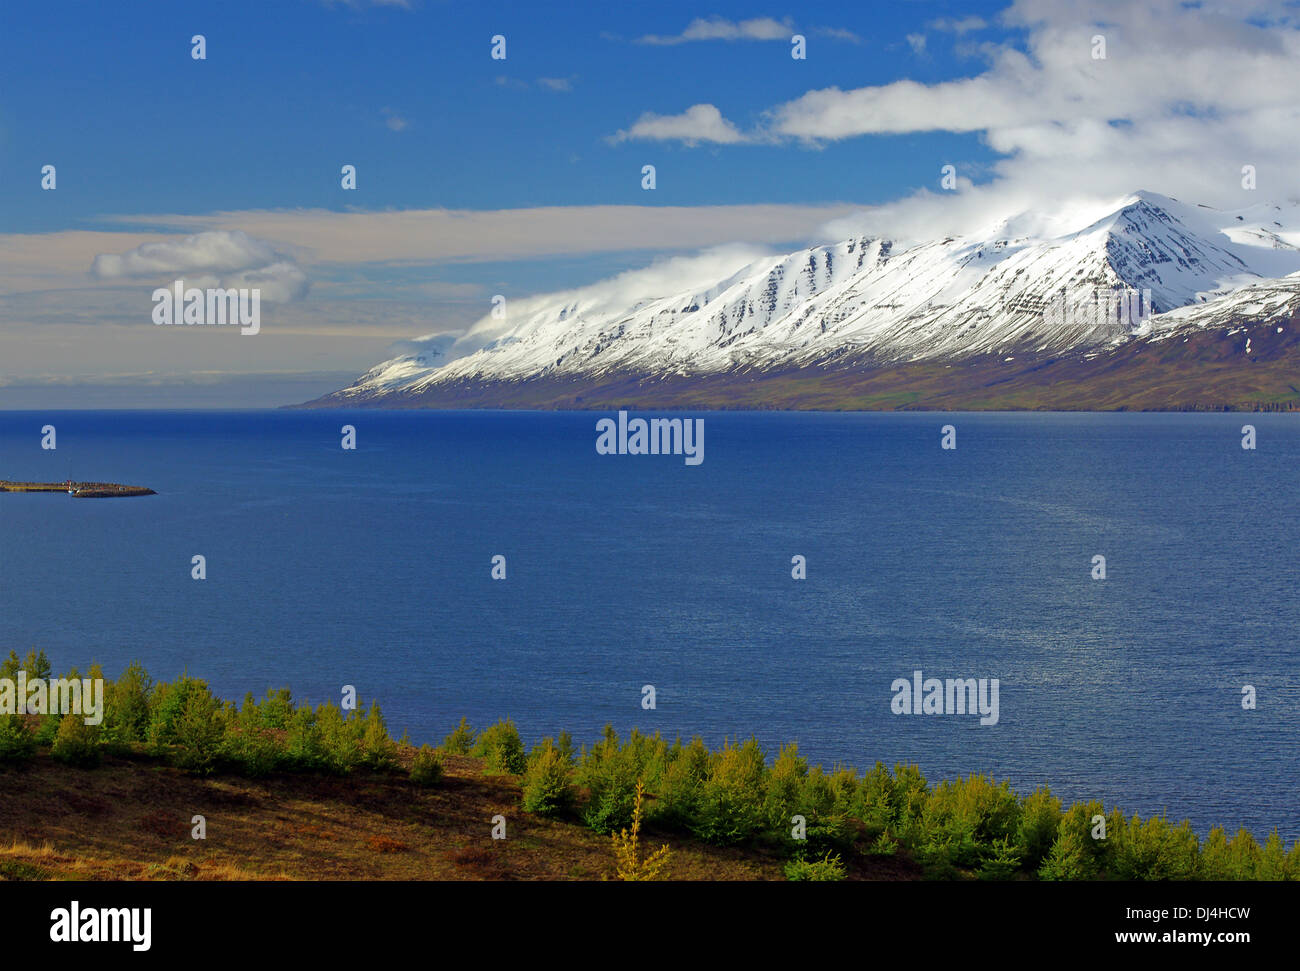 snowcovered mountains in northern iceland - Stock Image